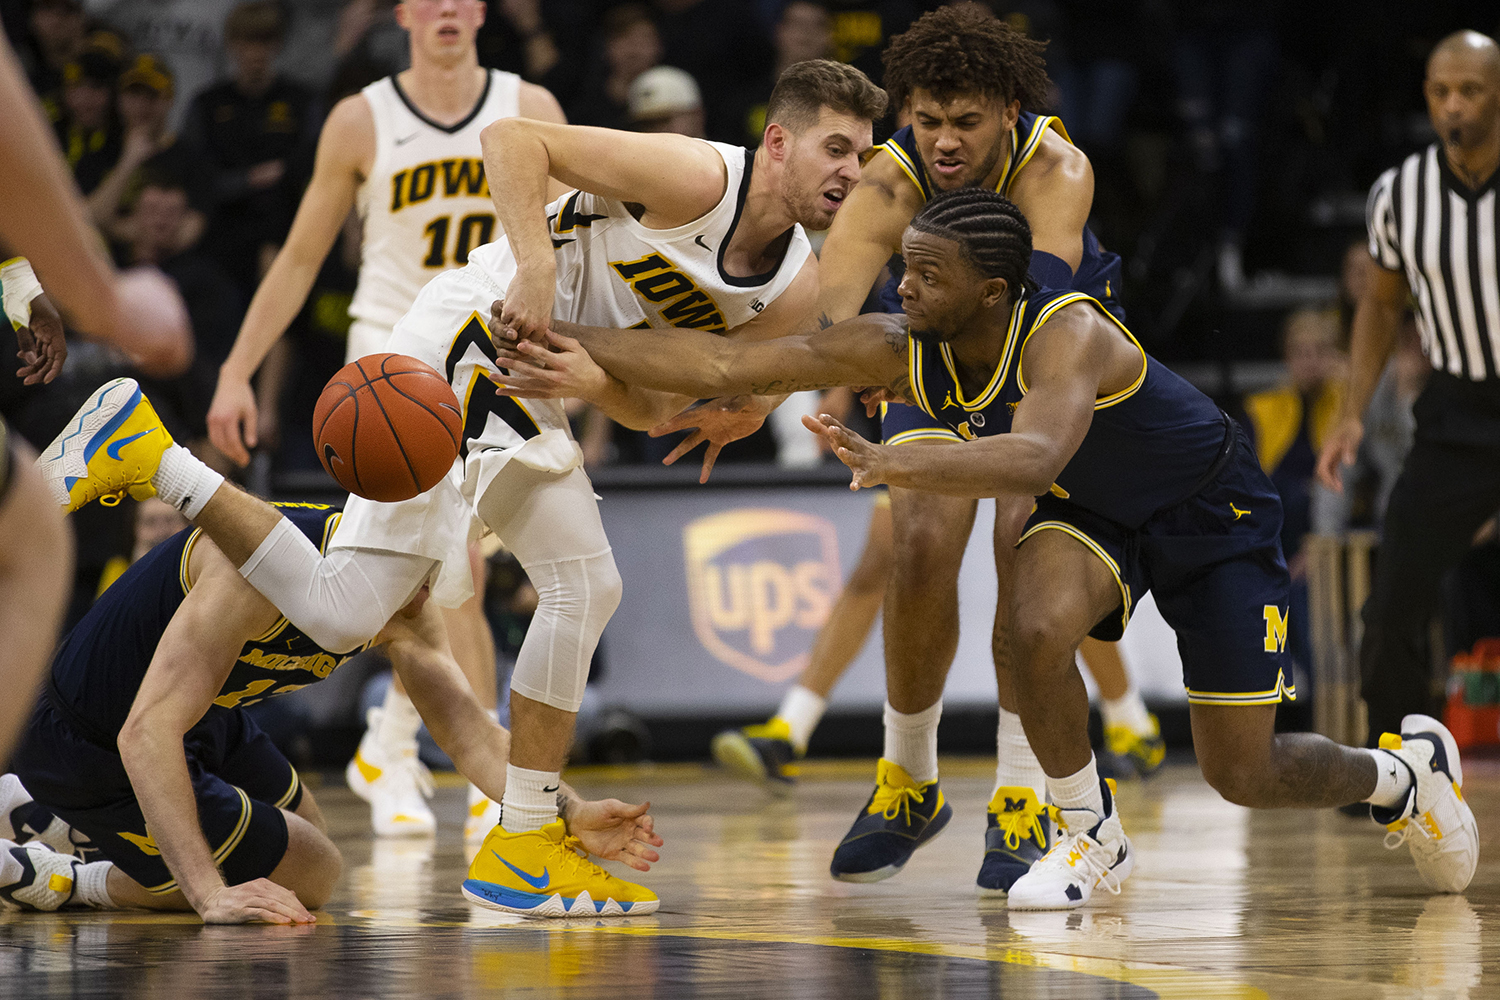 Iowa+guard+Jordan+Bohannon+fights+for+control+of+the+ball+with+Michigan+players+during+the+Iowa%2FMichigan+men%27s+basketball+game+at+Carver-Hawkeye+Arena+on+Friday%2C+February+1%2C+2019.+The+Hawkeyes+took+down+the+No.+5+ranked+Wolverines%2C+74-59.+